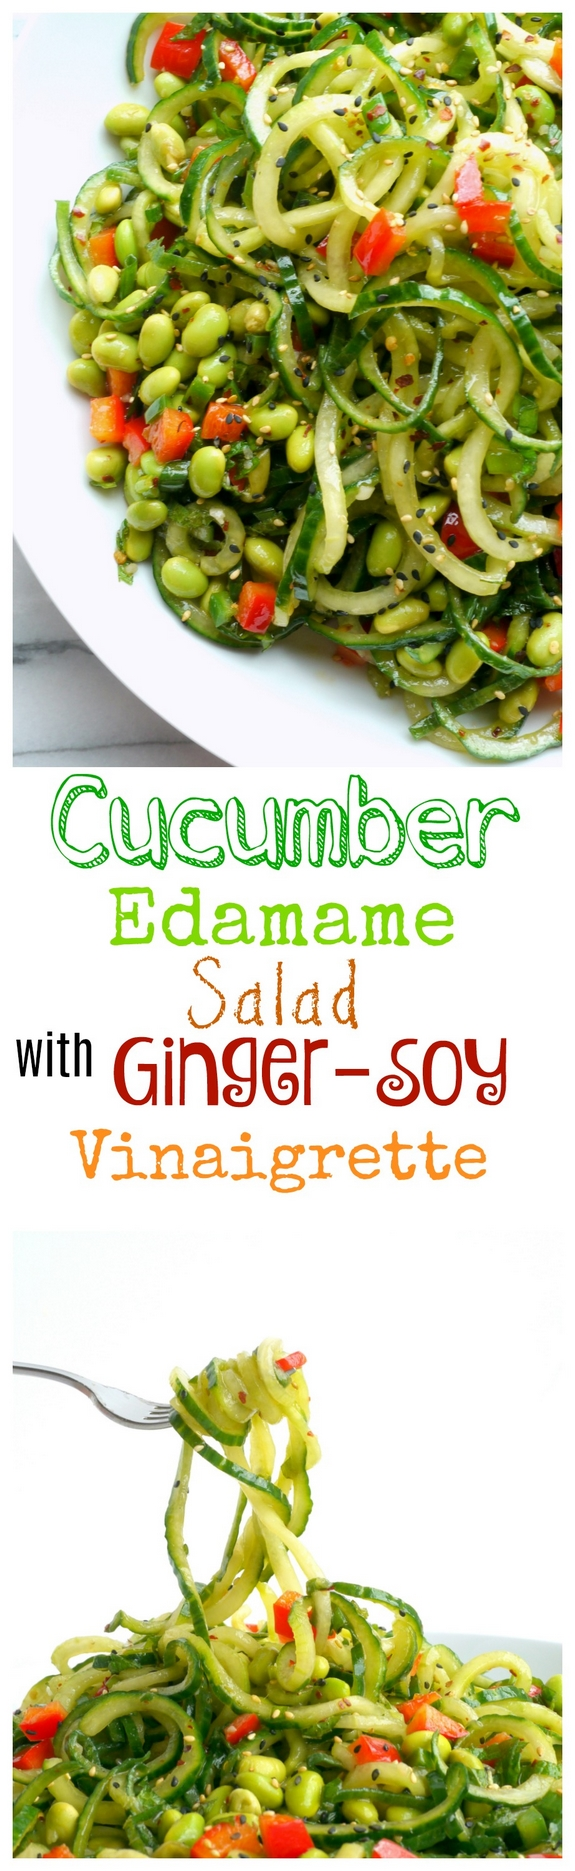 Cucumber Edamame Salad with Ginger-Soy Vinaigrette from NoblePig.com